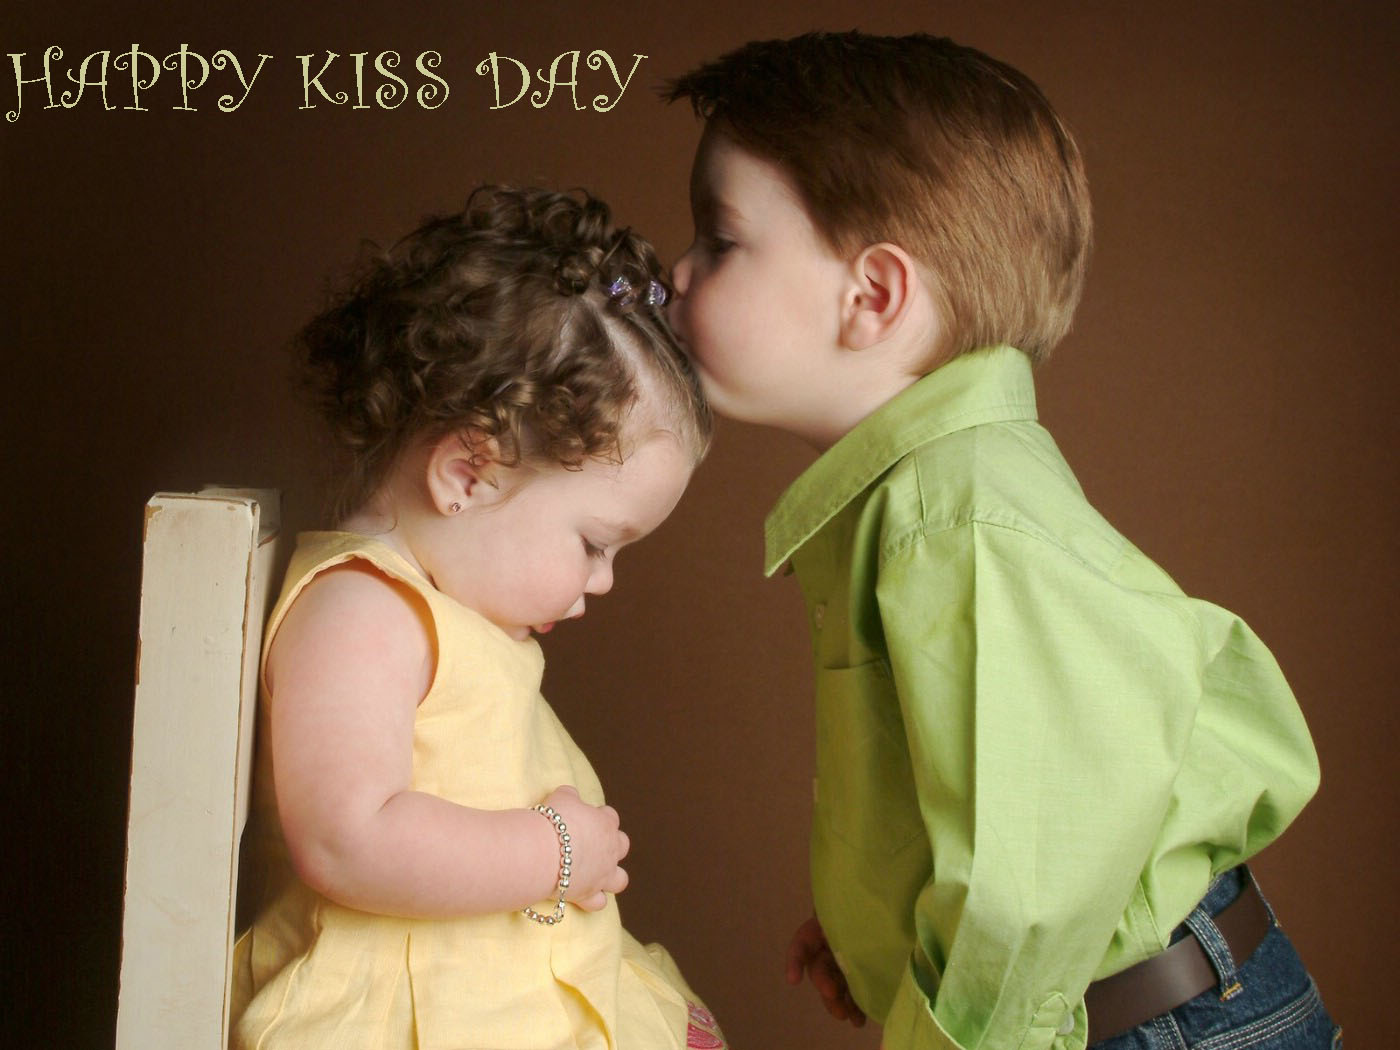 98-Kiss Day Wishes